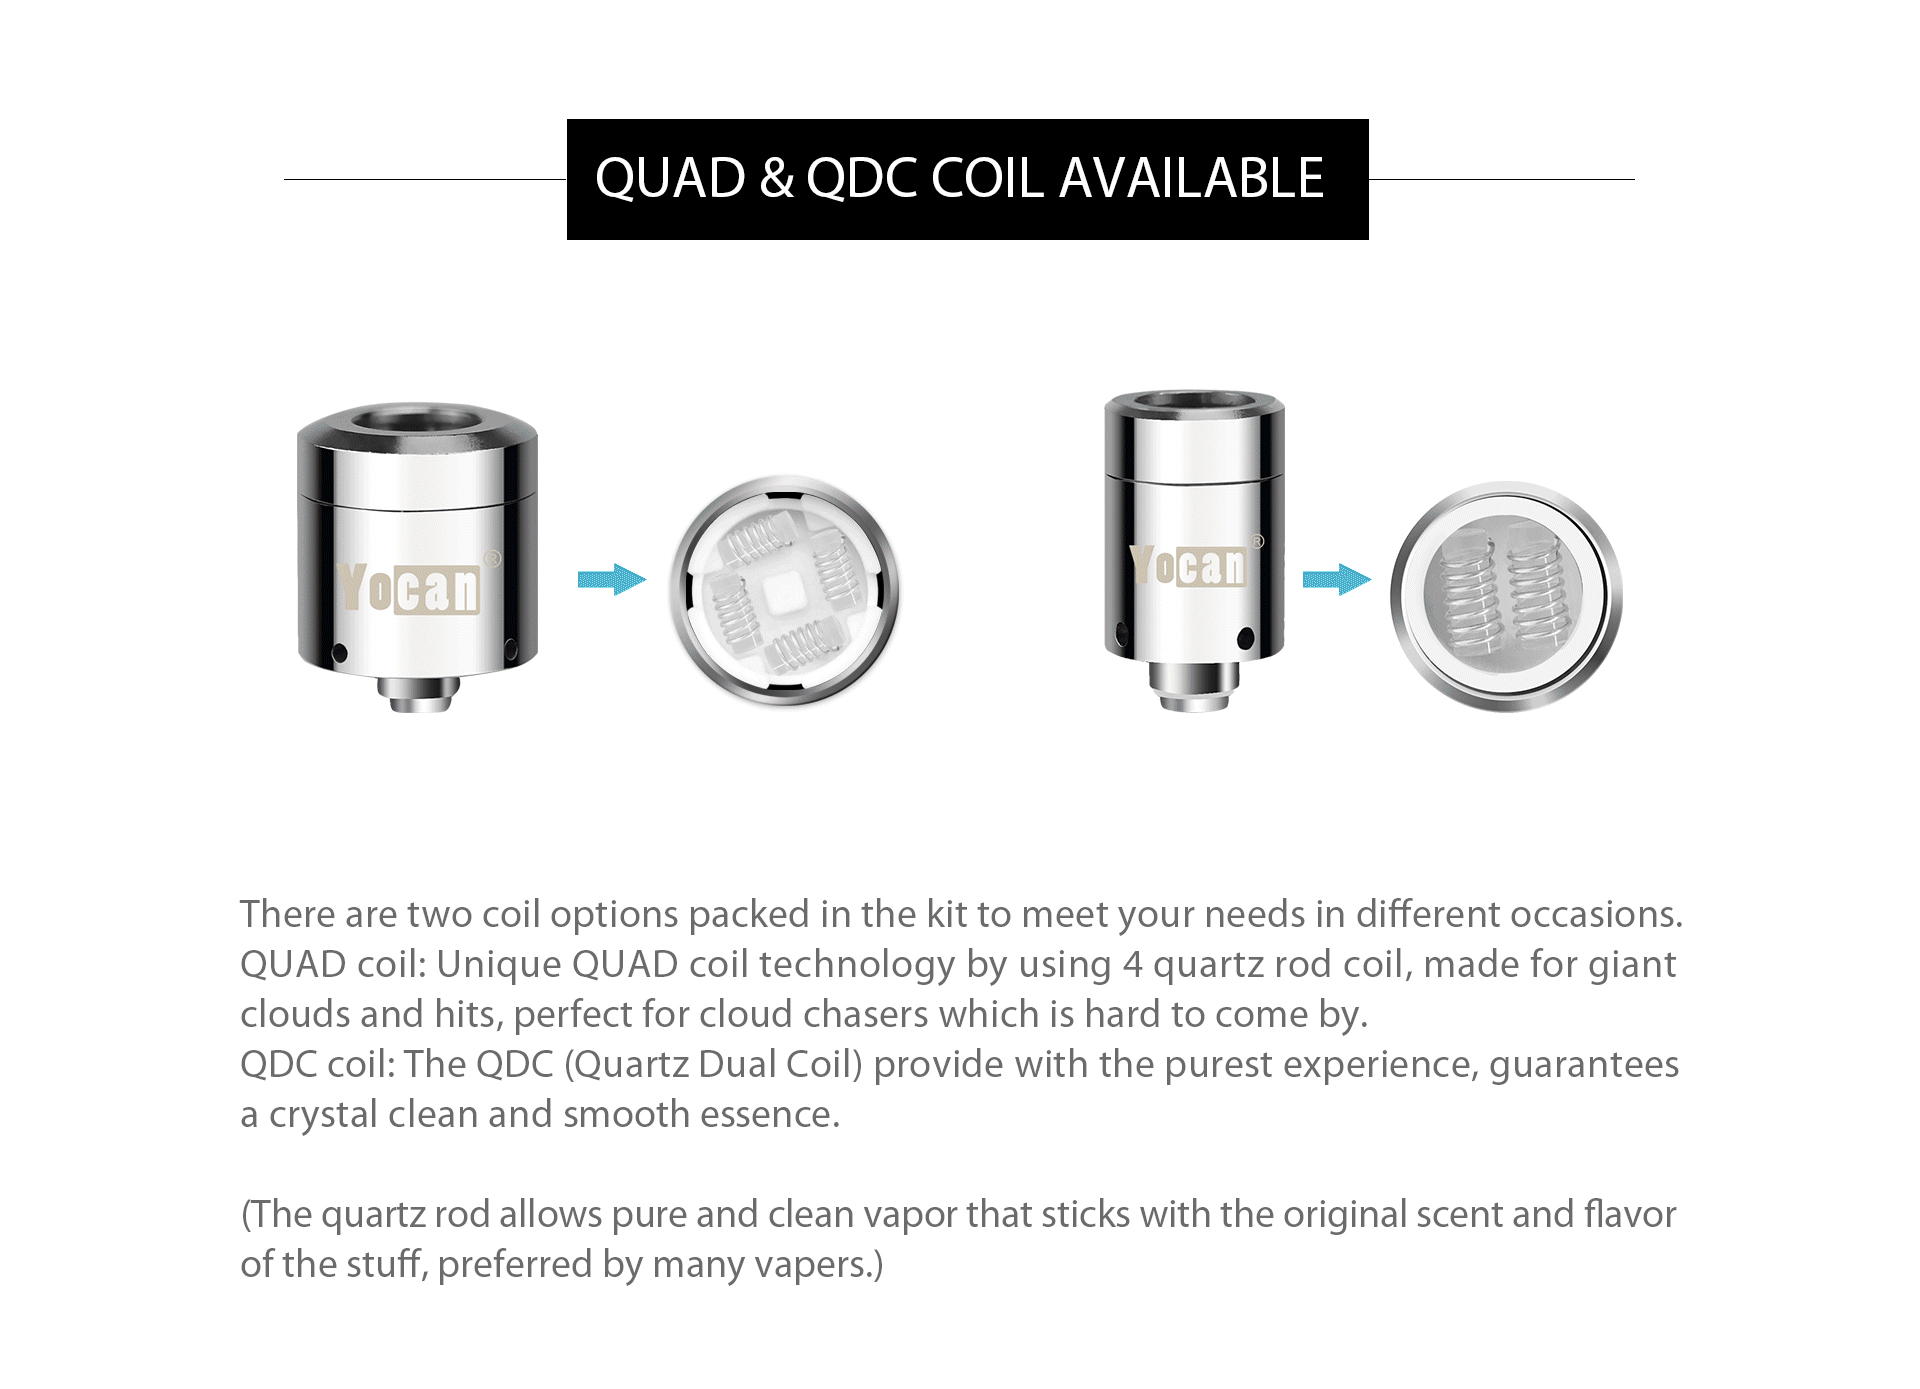 Yocan loaded provide two coil option: QUAD coil and QDC coil.